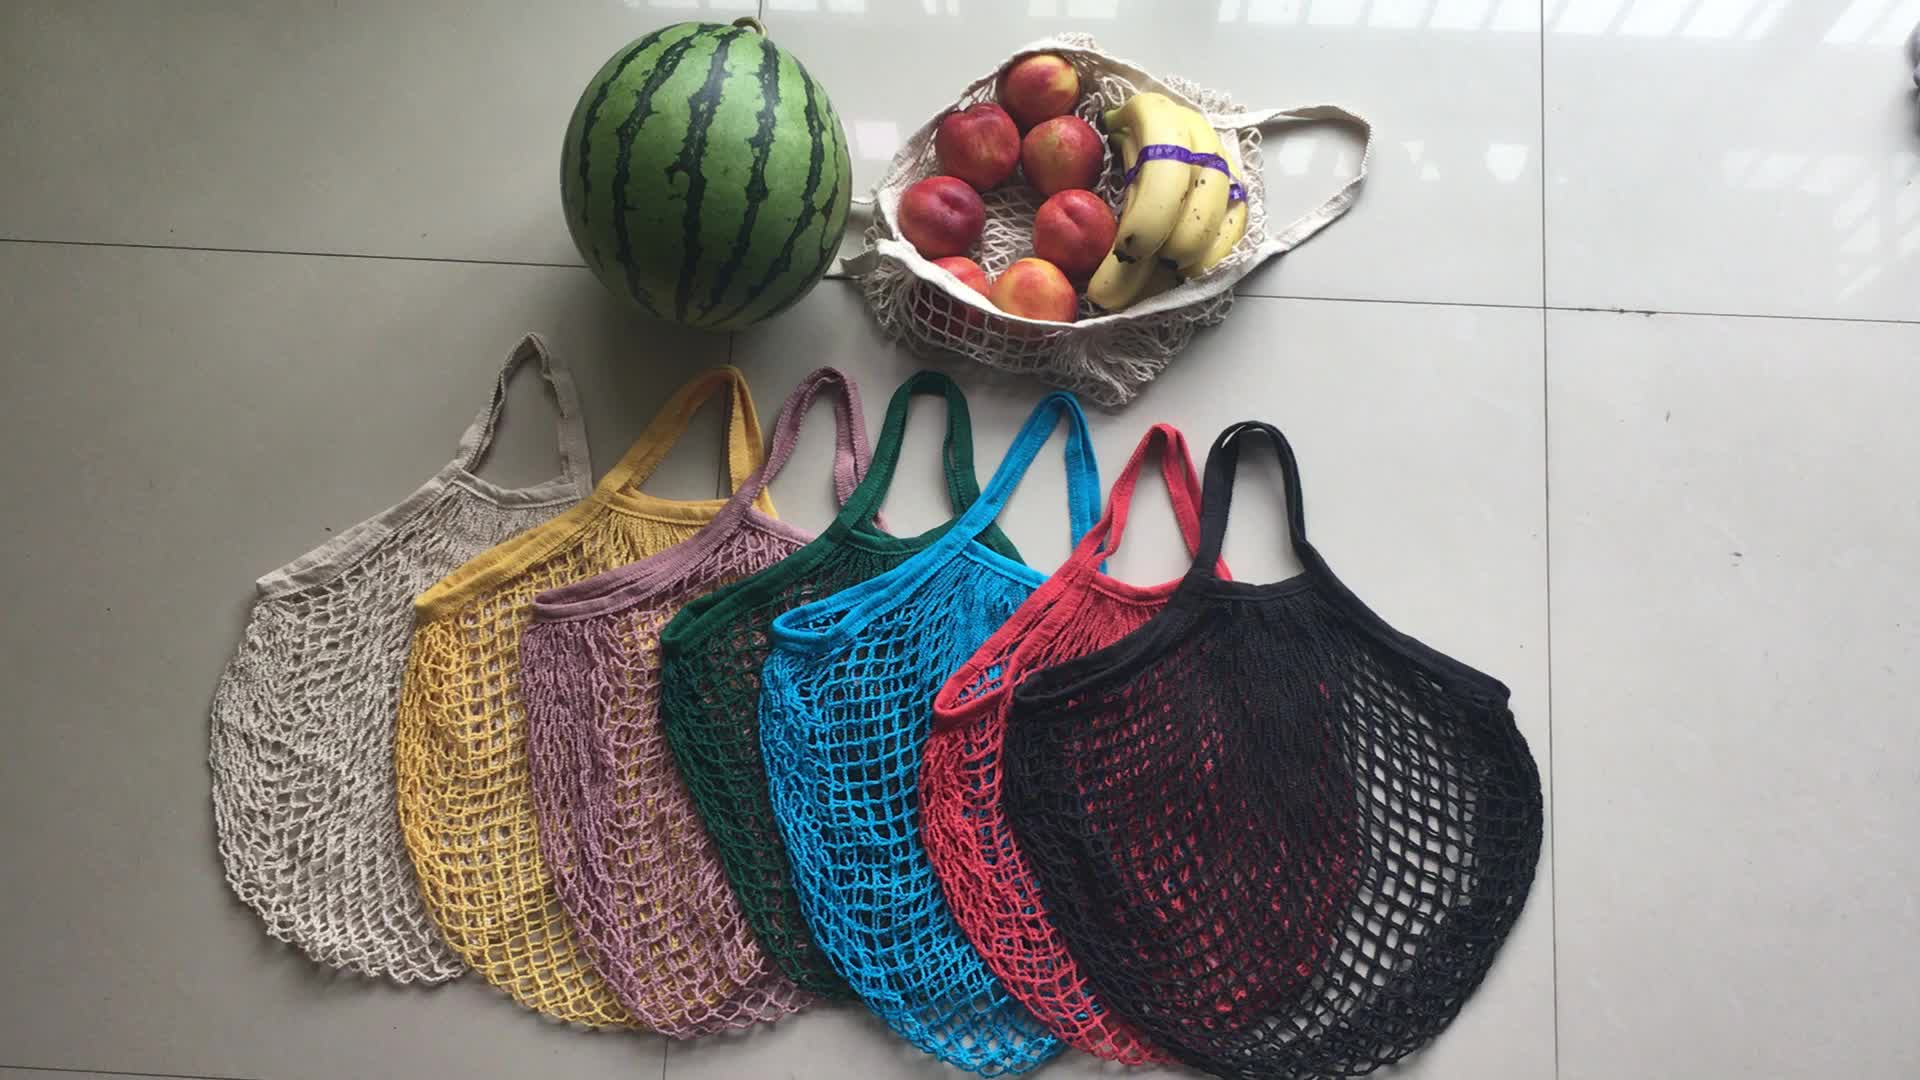 Recycled grocery shopping fruit cotton net bag reusable tote cotton mesh bag